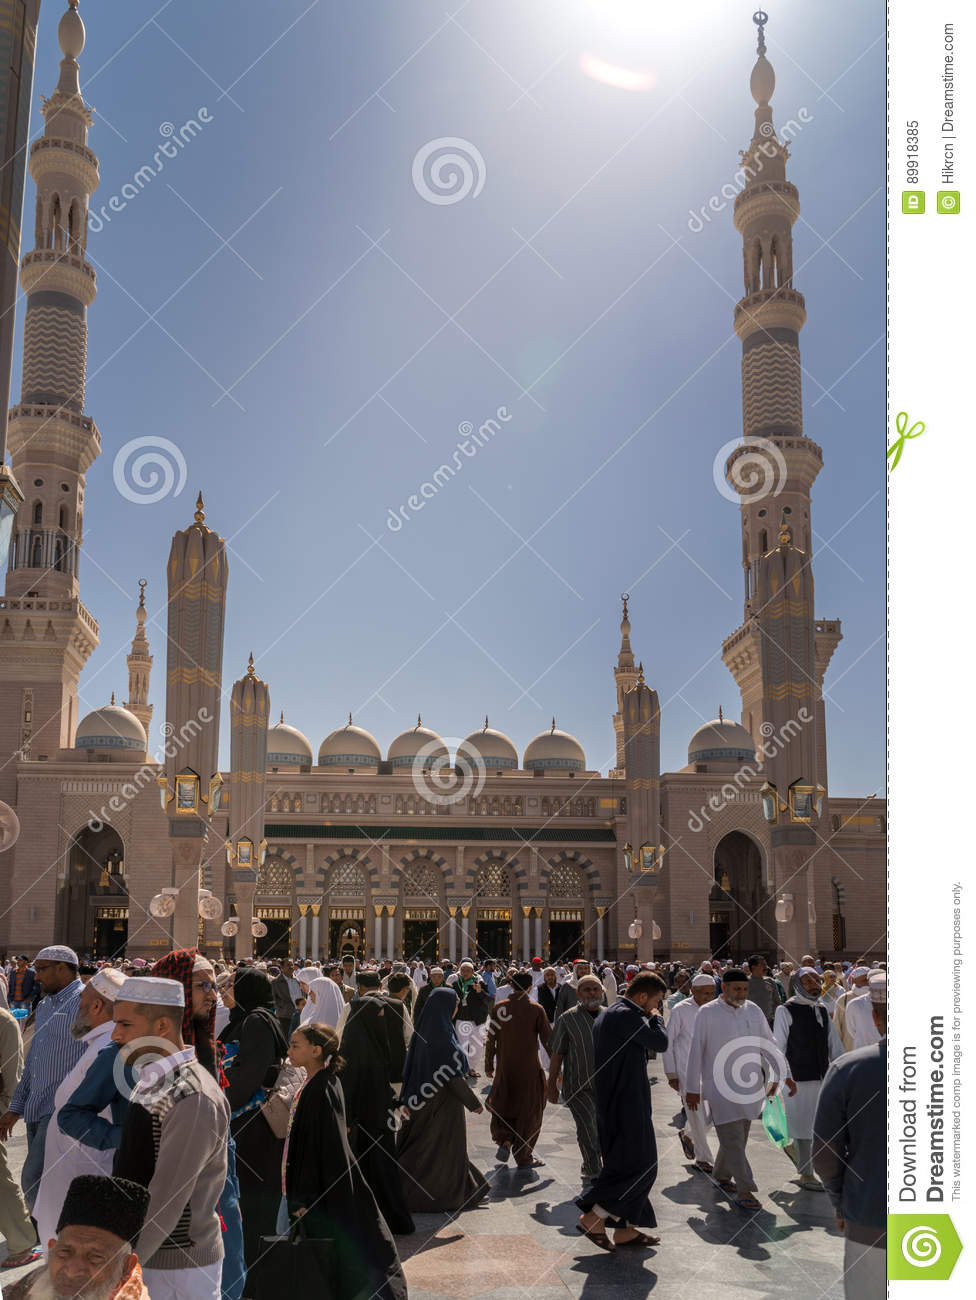 Unidentified People Go Out At The Nabawi Mosque, Saudi